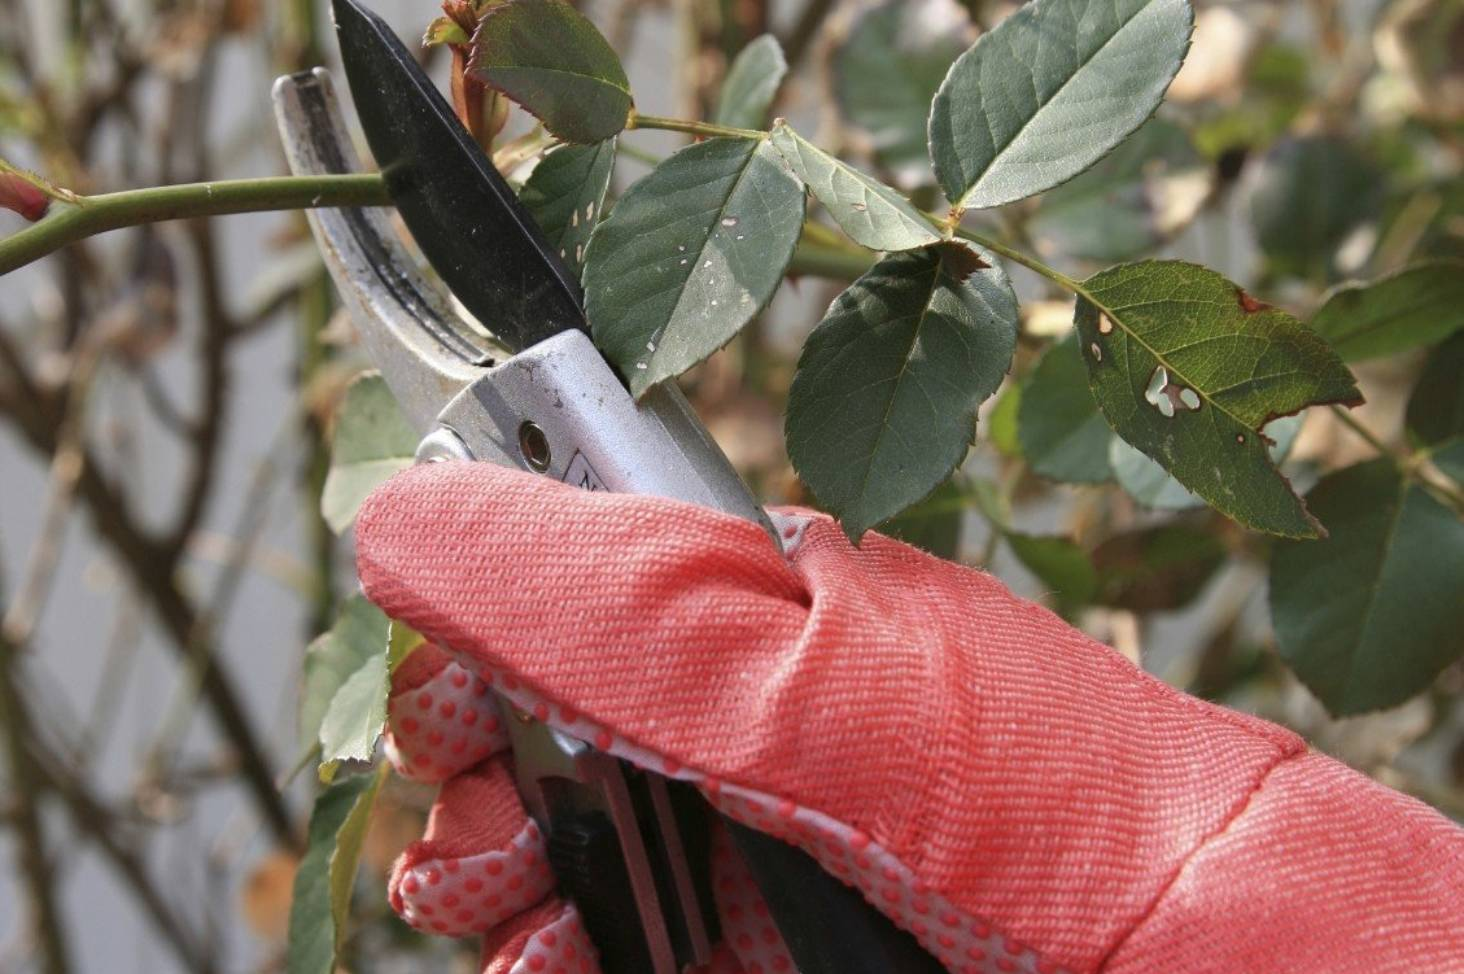 Winter rose care: planting, pruning and spraying | Stuff co nz